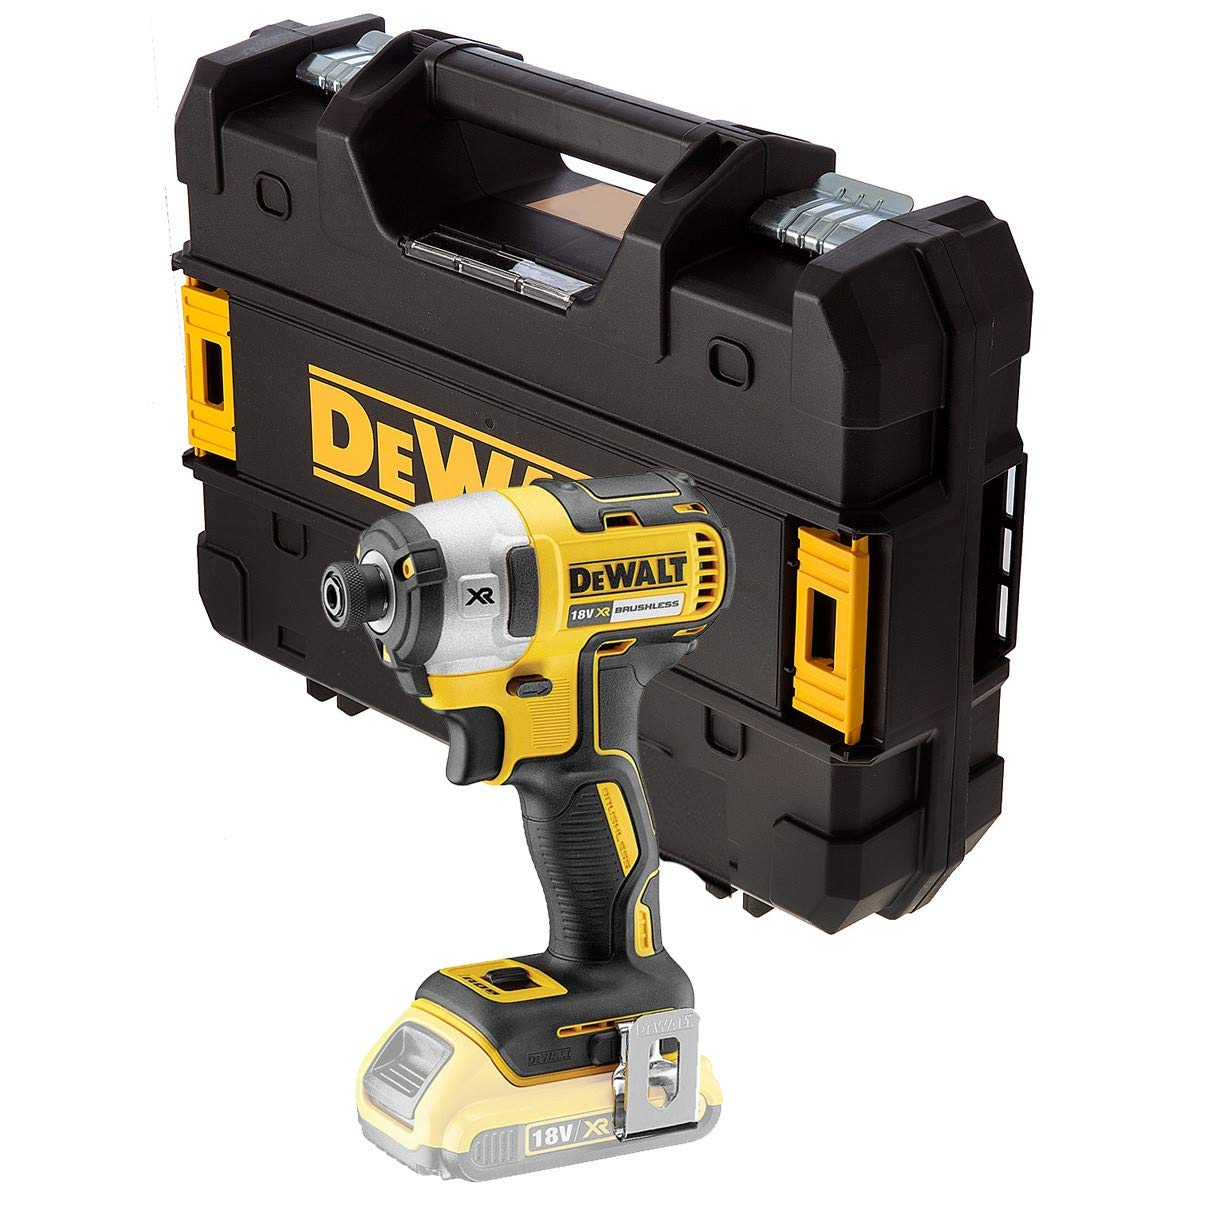 DEWALT DCF887N 18V XR G2 Brushless 3 Speed Impact Driver Bare Unit + Tstak Case, 280 W, Yellow